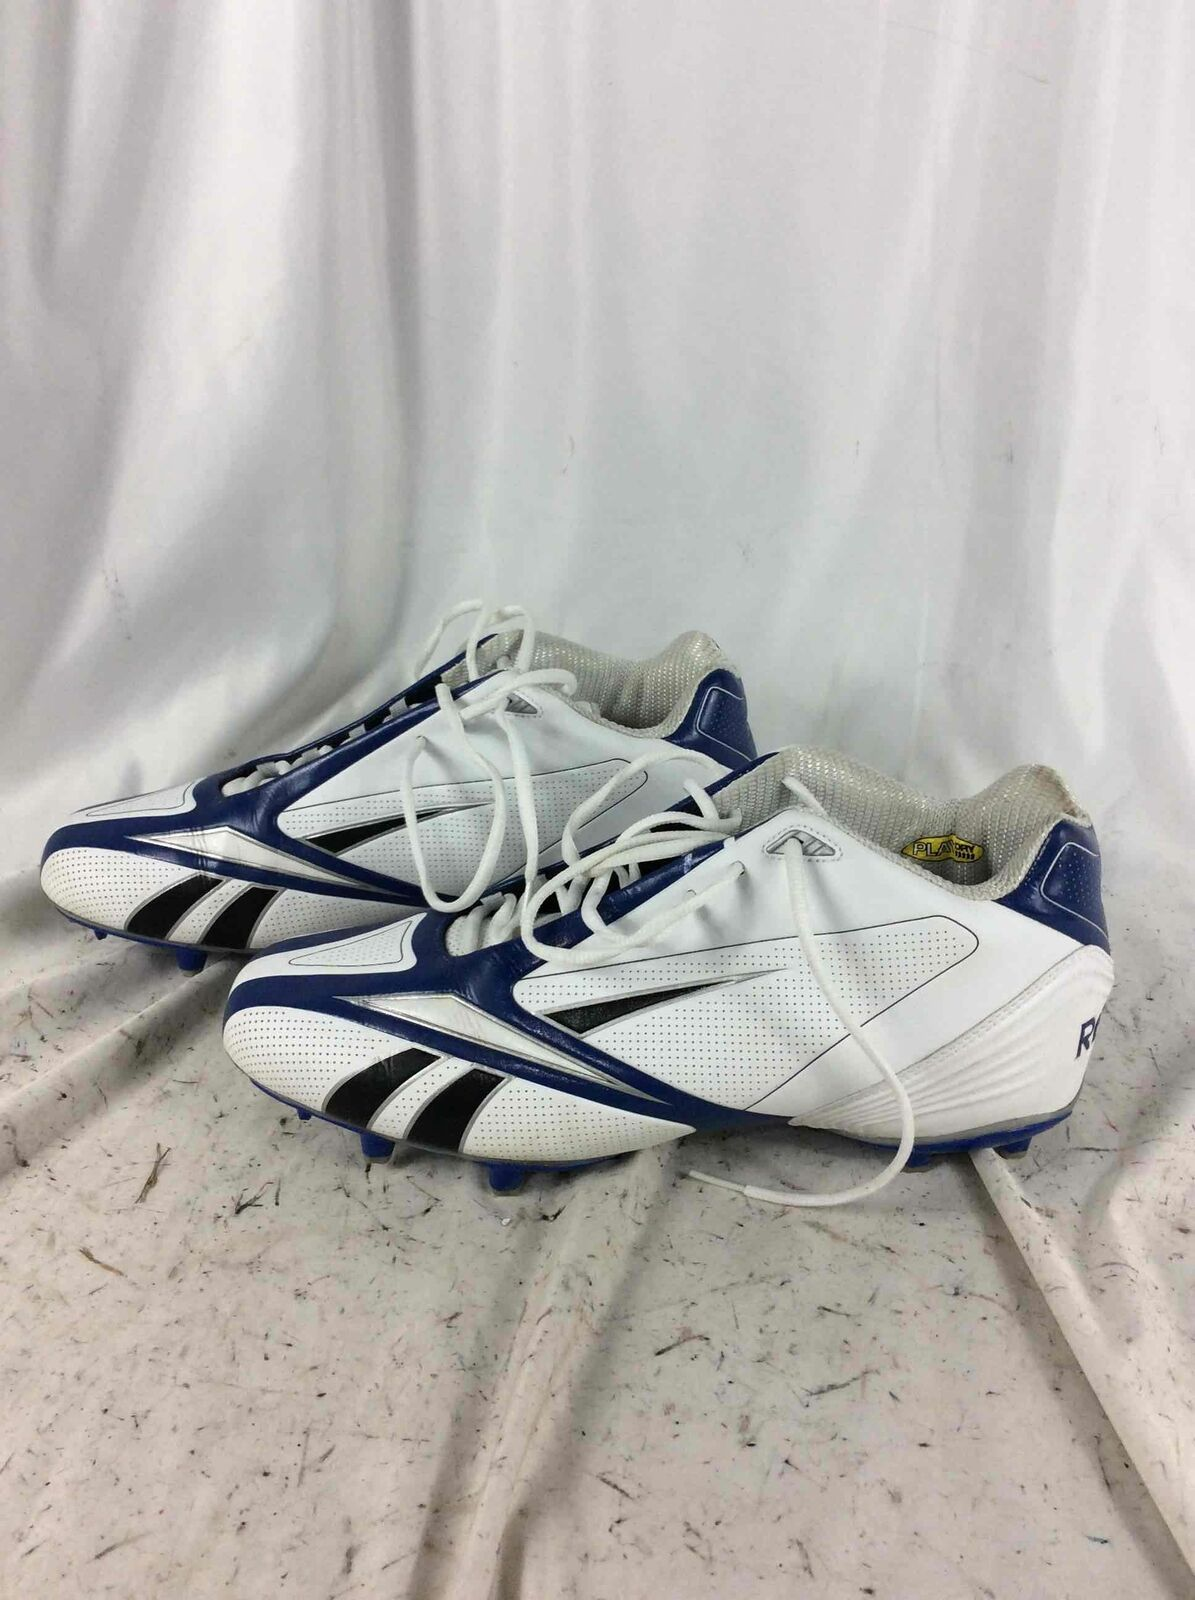 Primary image for Reebok NFL Equipment 13.5 Size Football Cleats